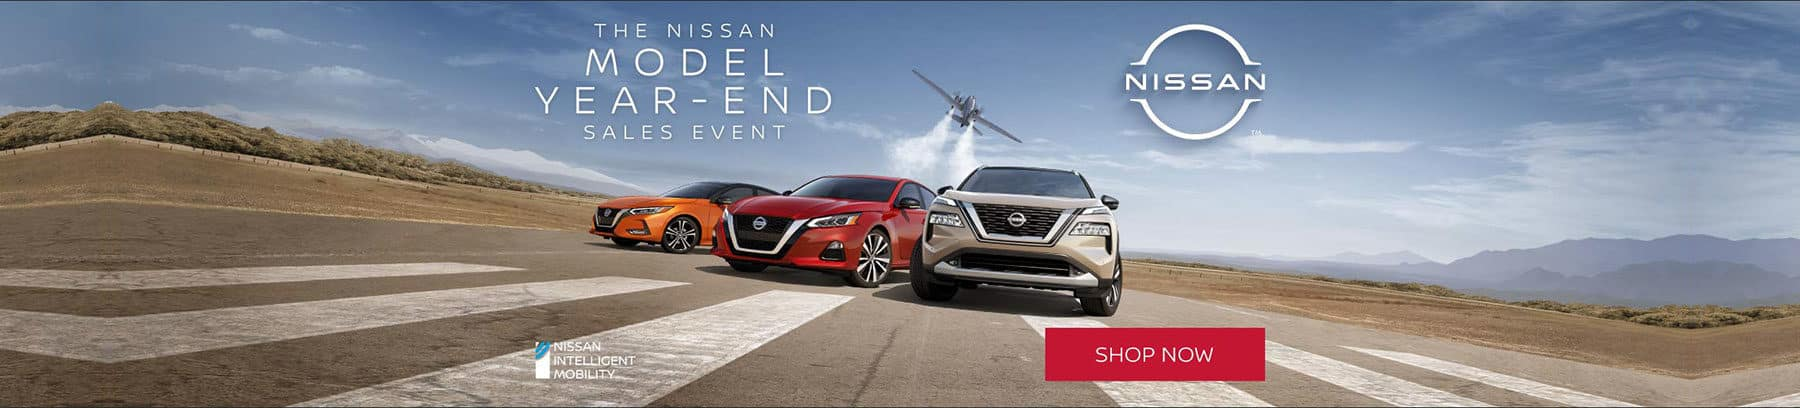 Nissan Model Year End Sales Event